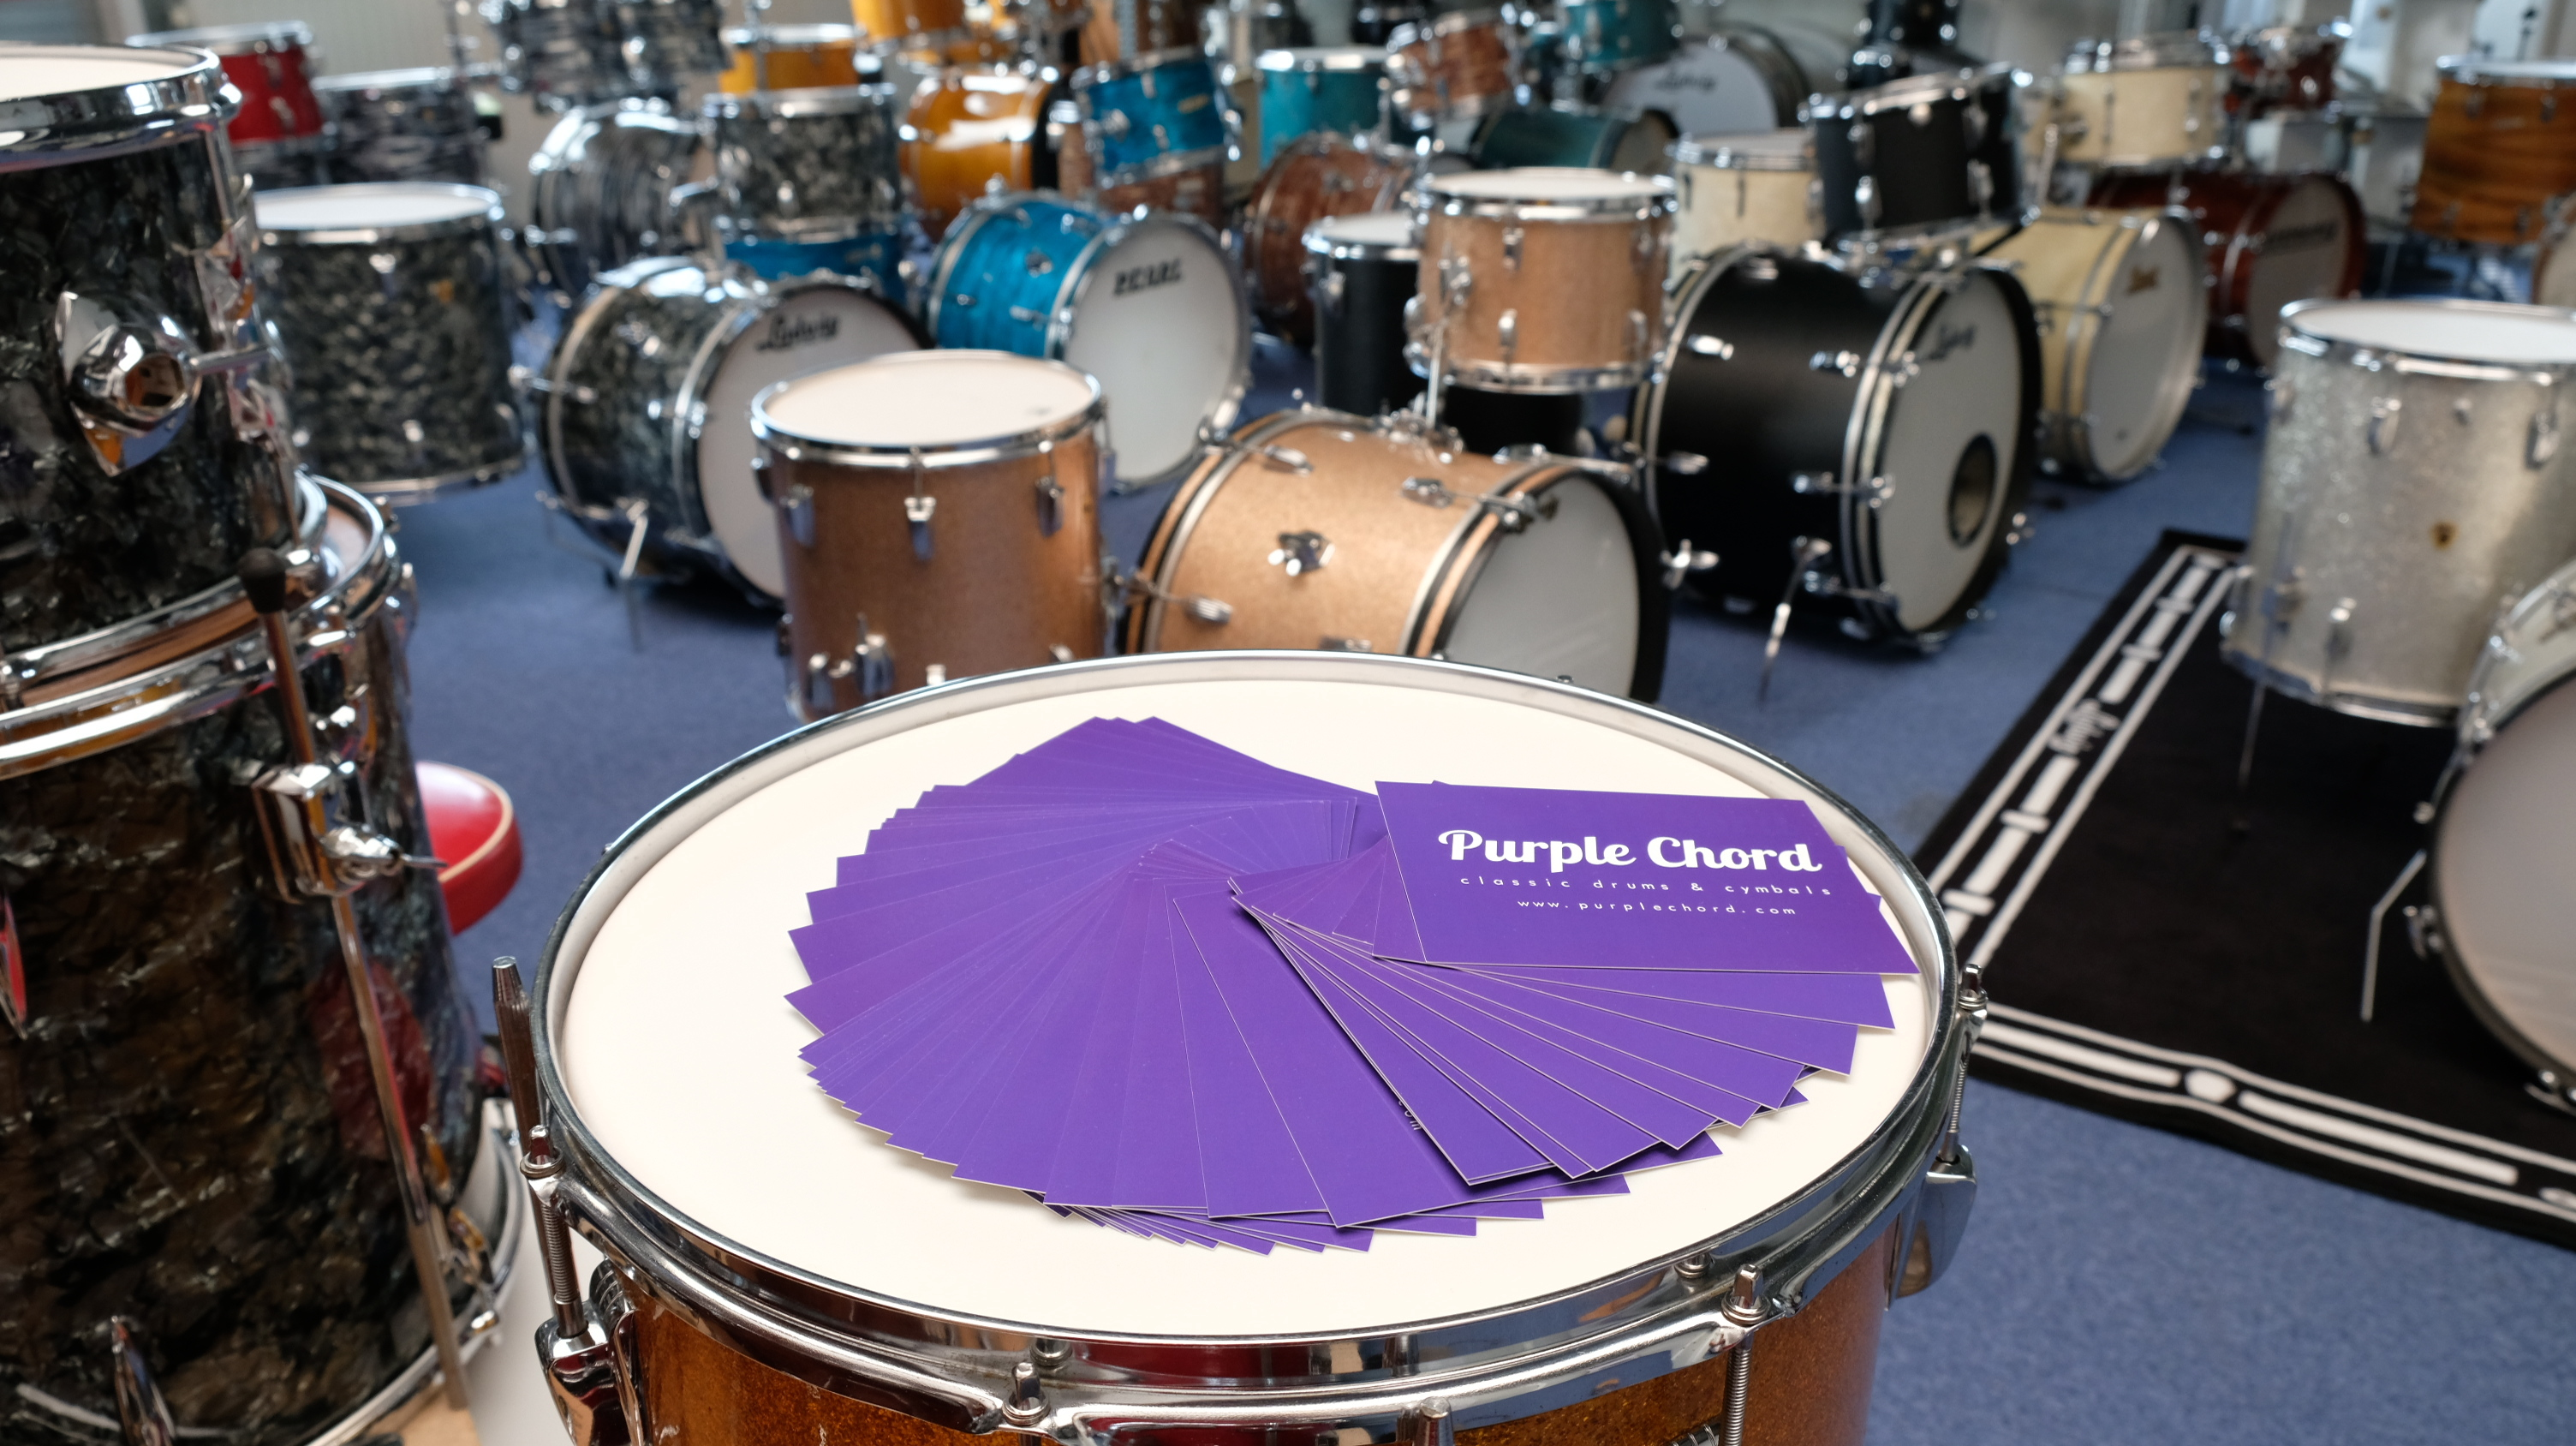 Purple_Chord_Vintage_Drums